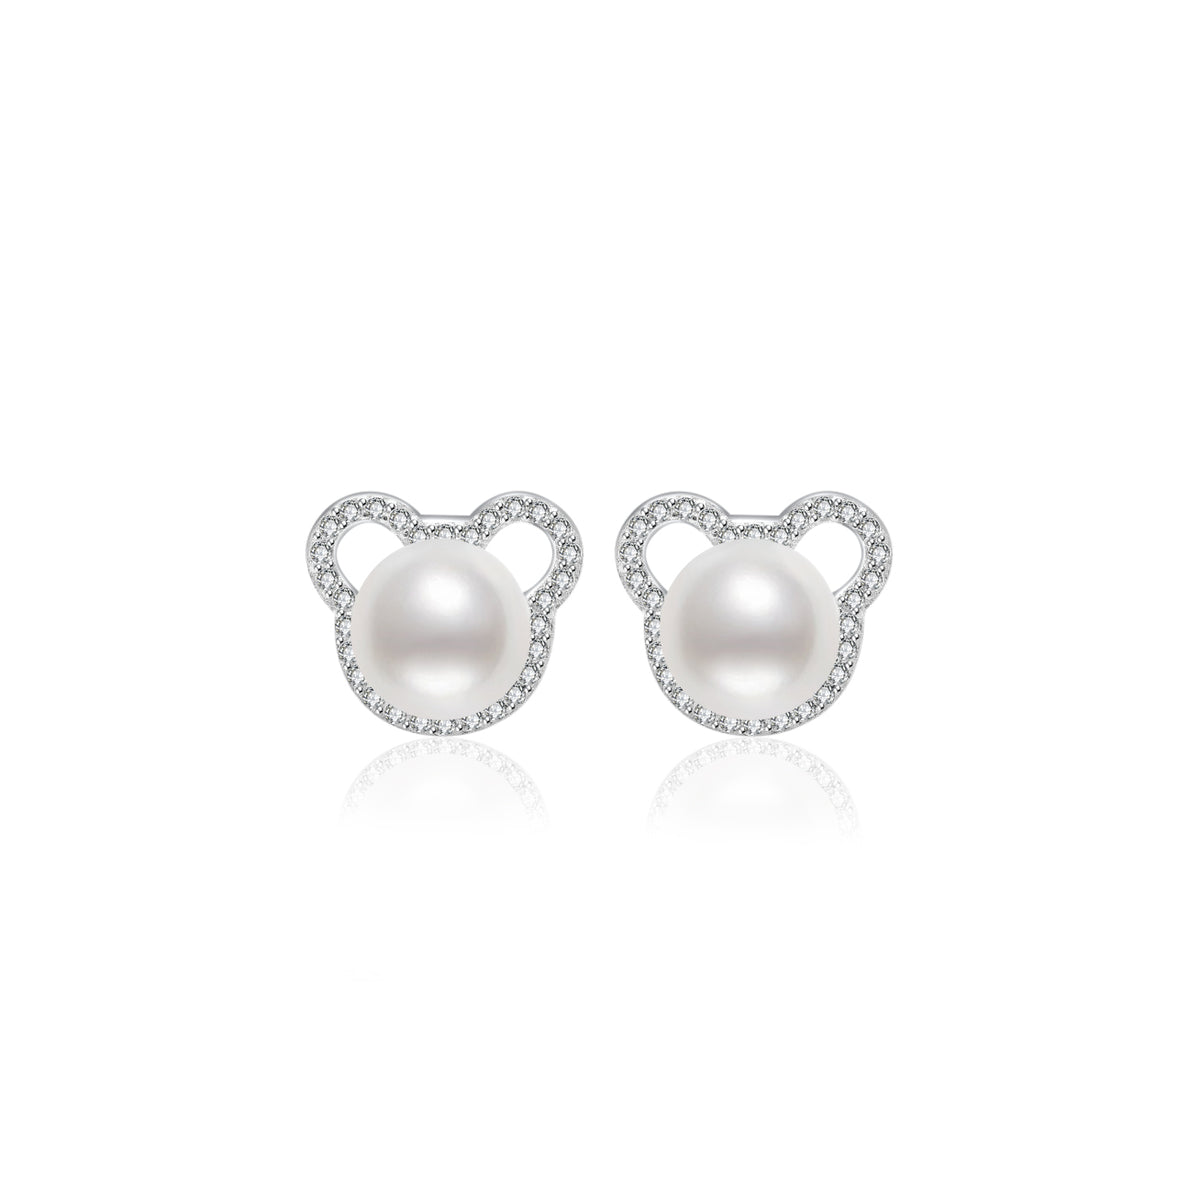 Pearly Lustre Wonderland Freshwater Pearl Earrings WE00075 Product Image